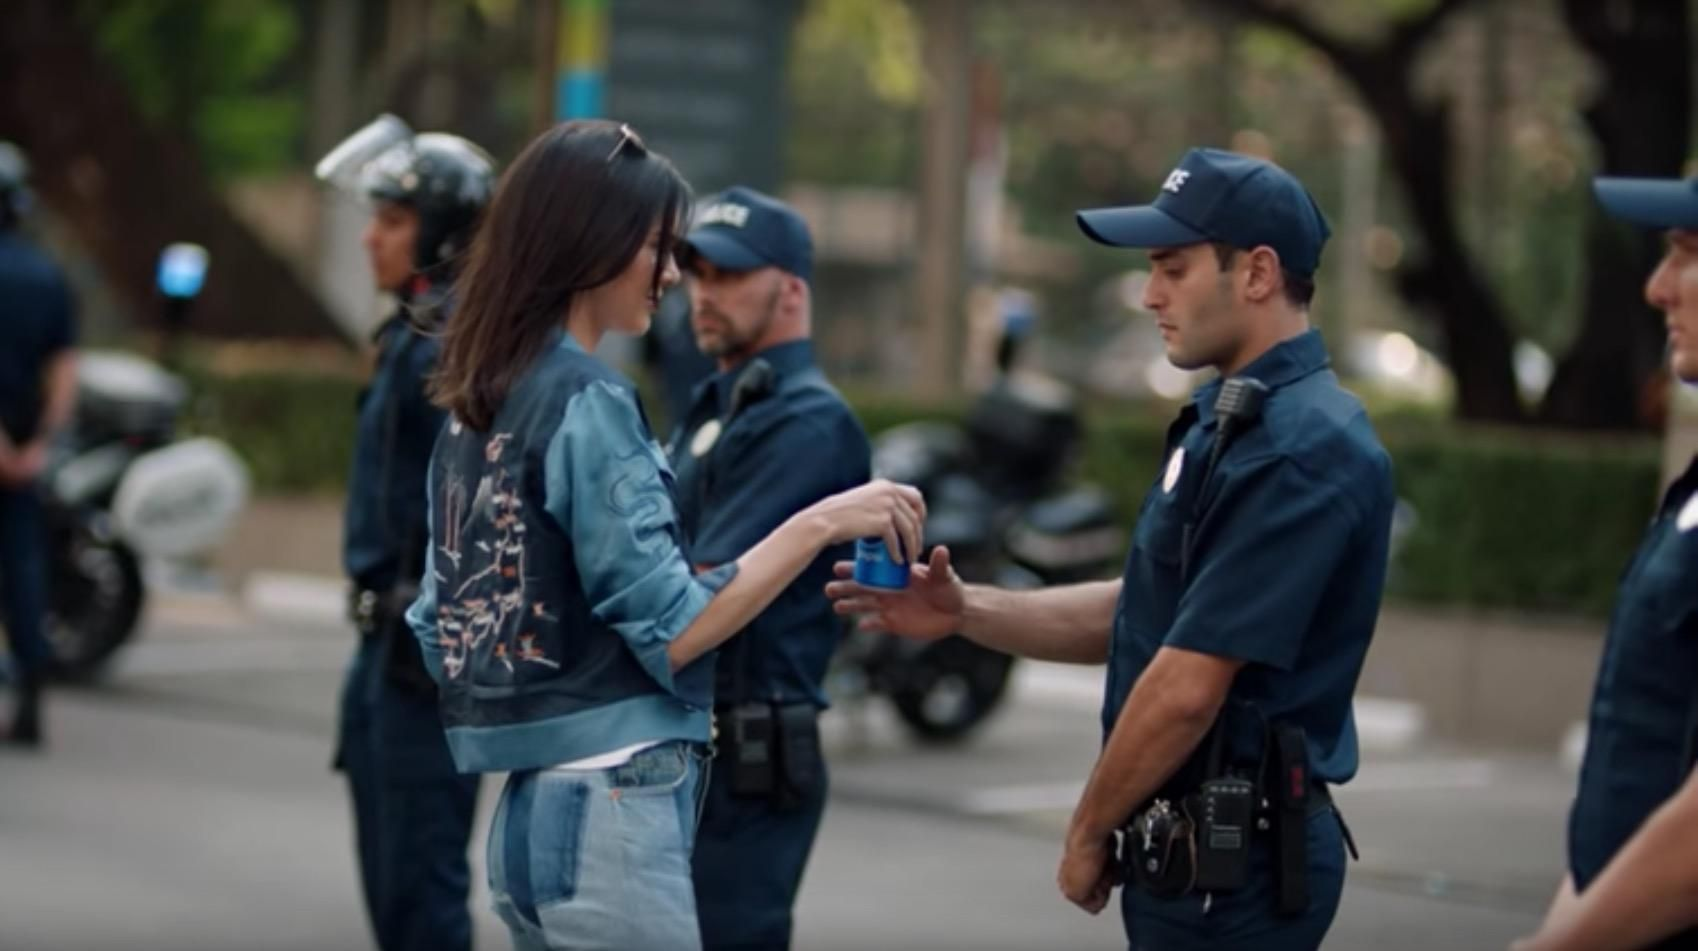 Pepsi ad: What happened when protestors tried offering police drinks